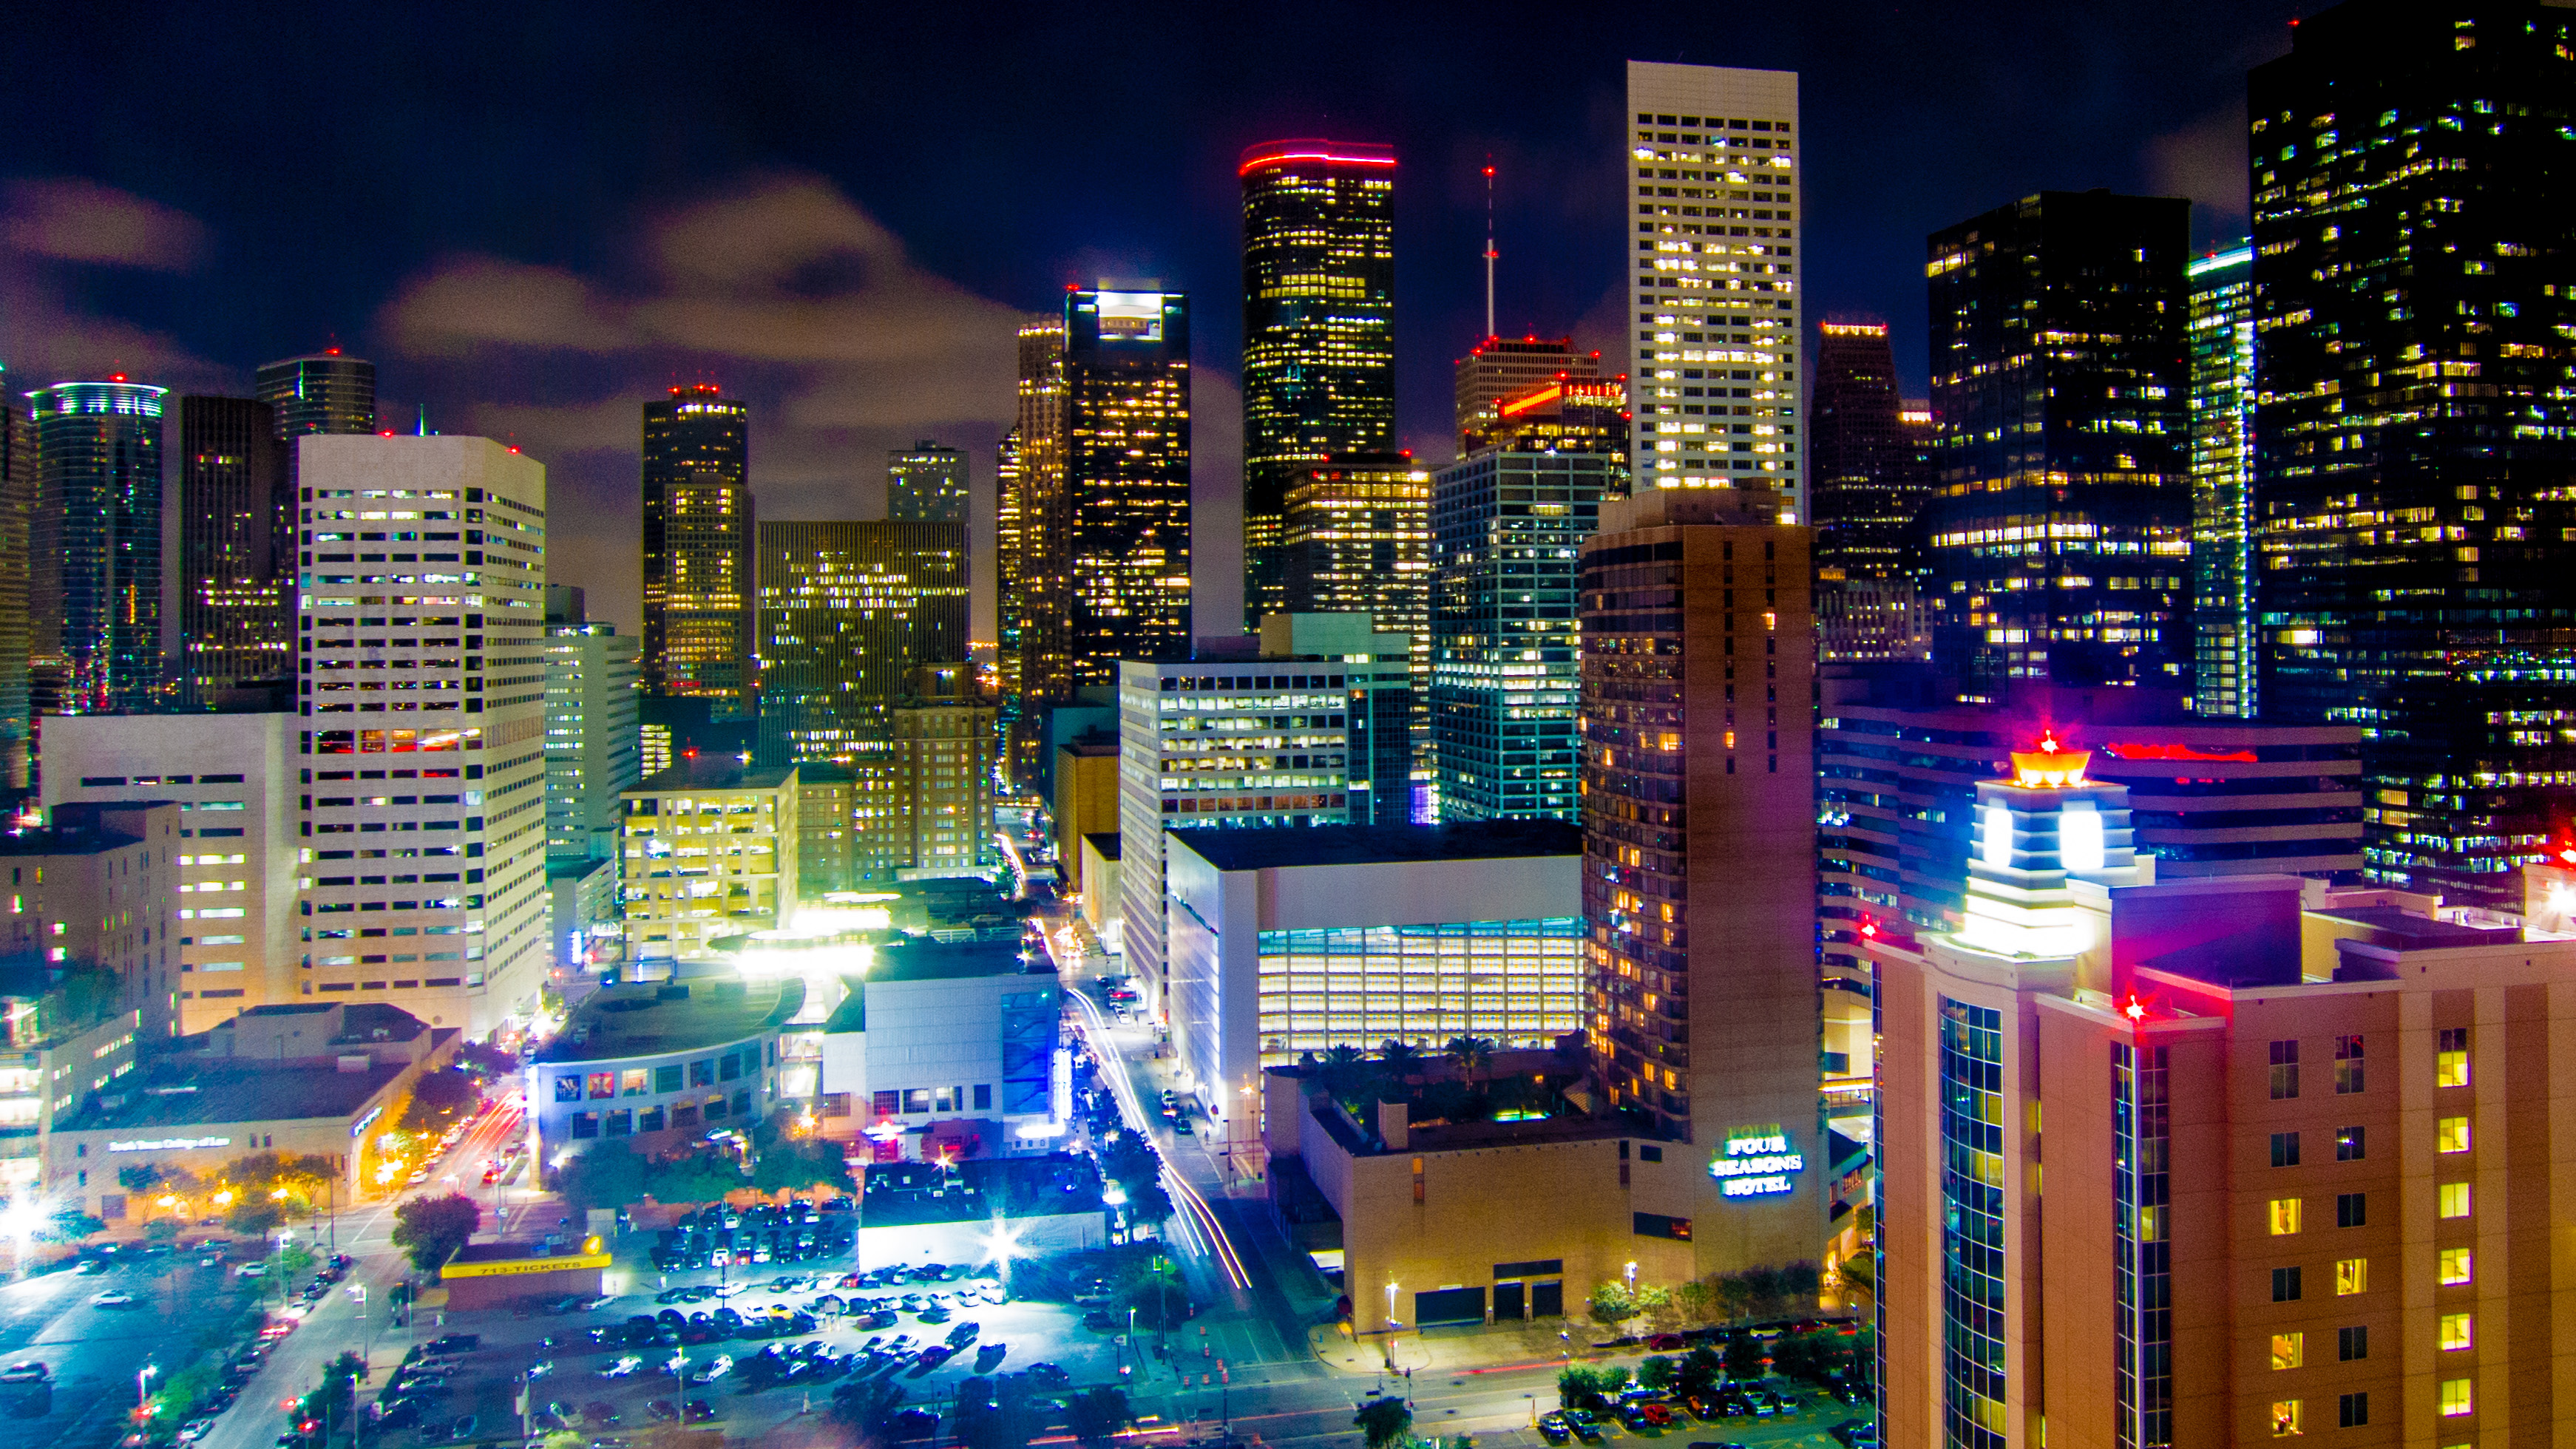 Downtown Houston at night, seen from the Hilton. This is a slightly different angle on what I stared at for two solid weeks.